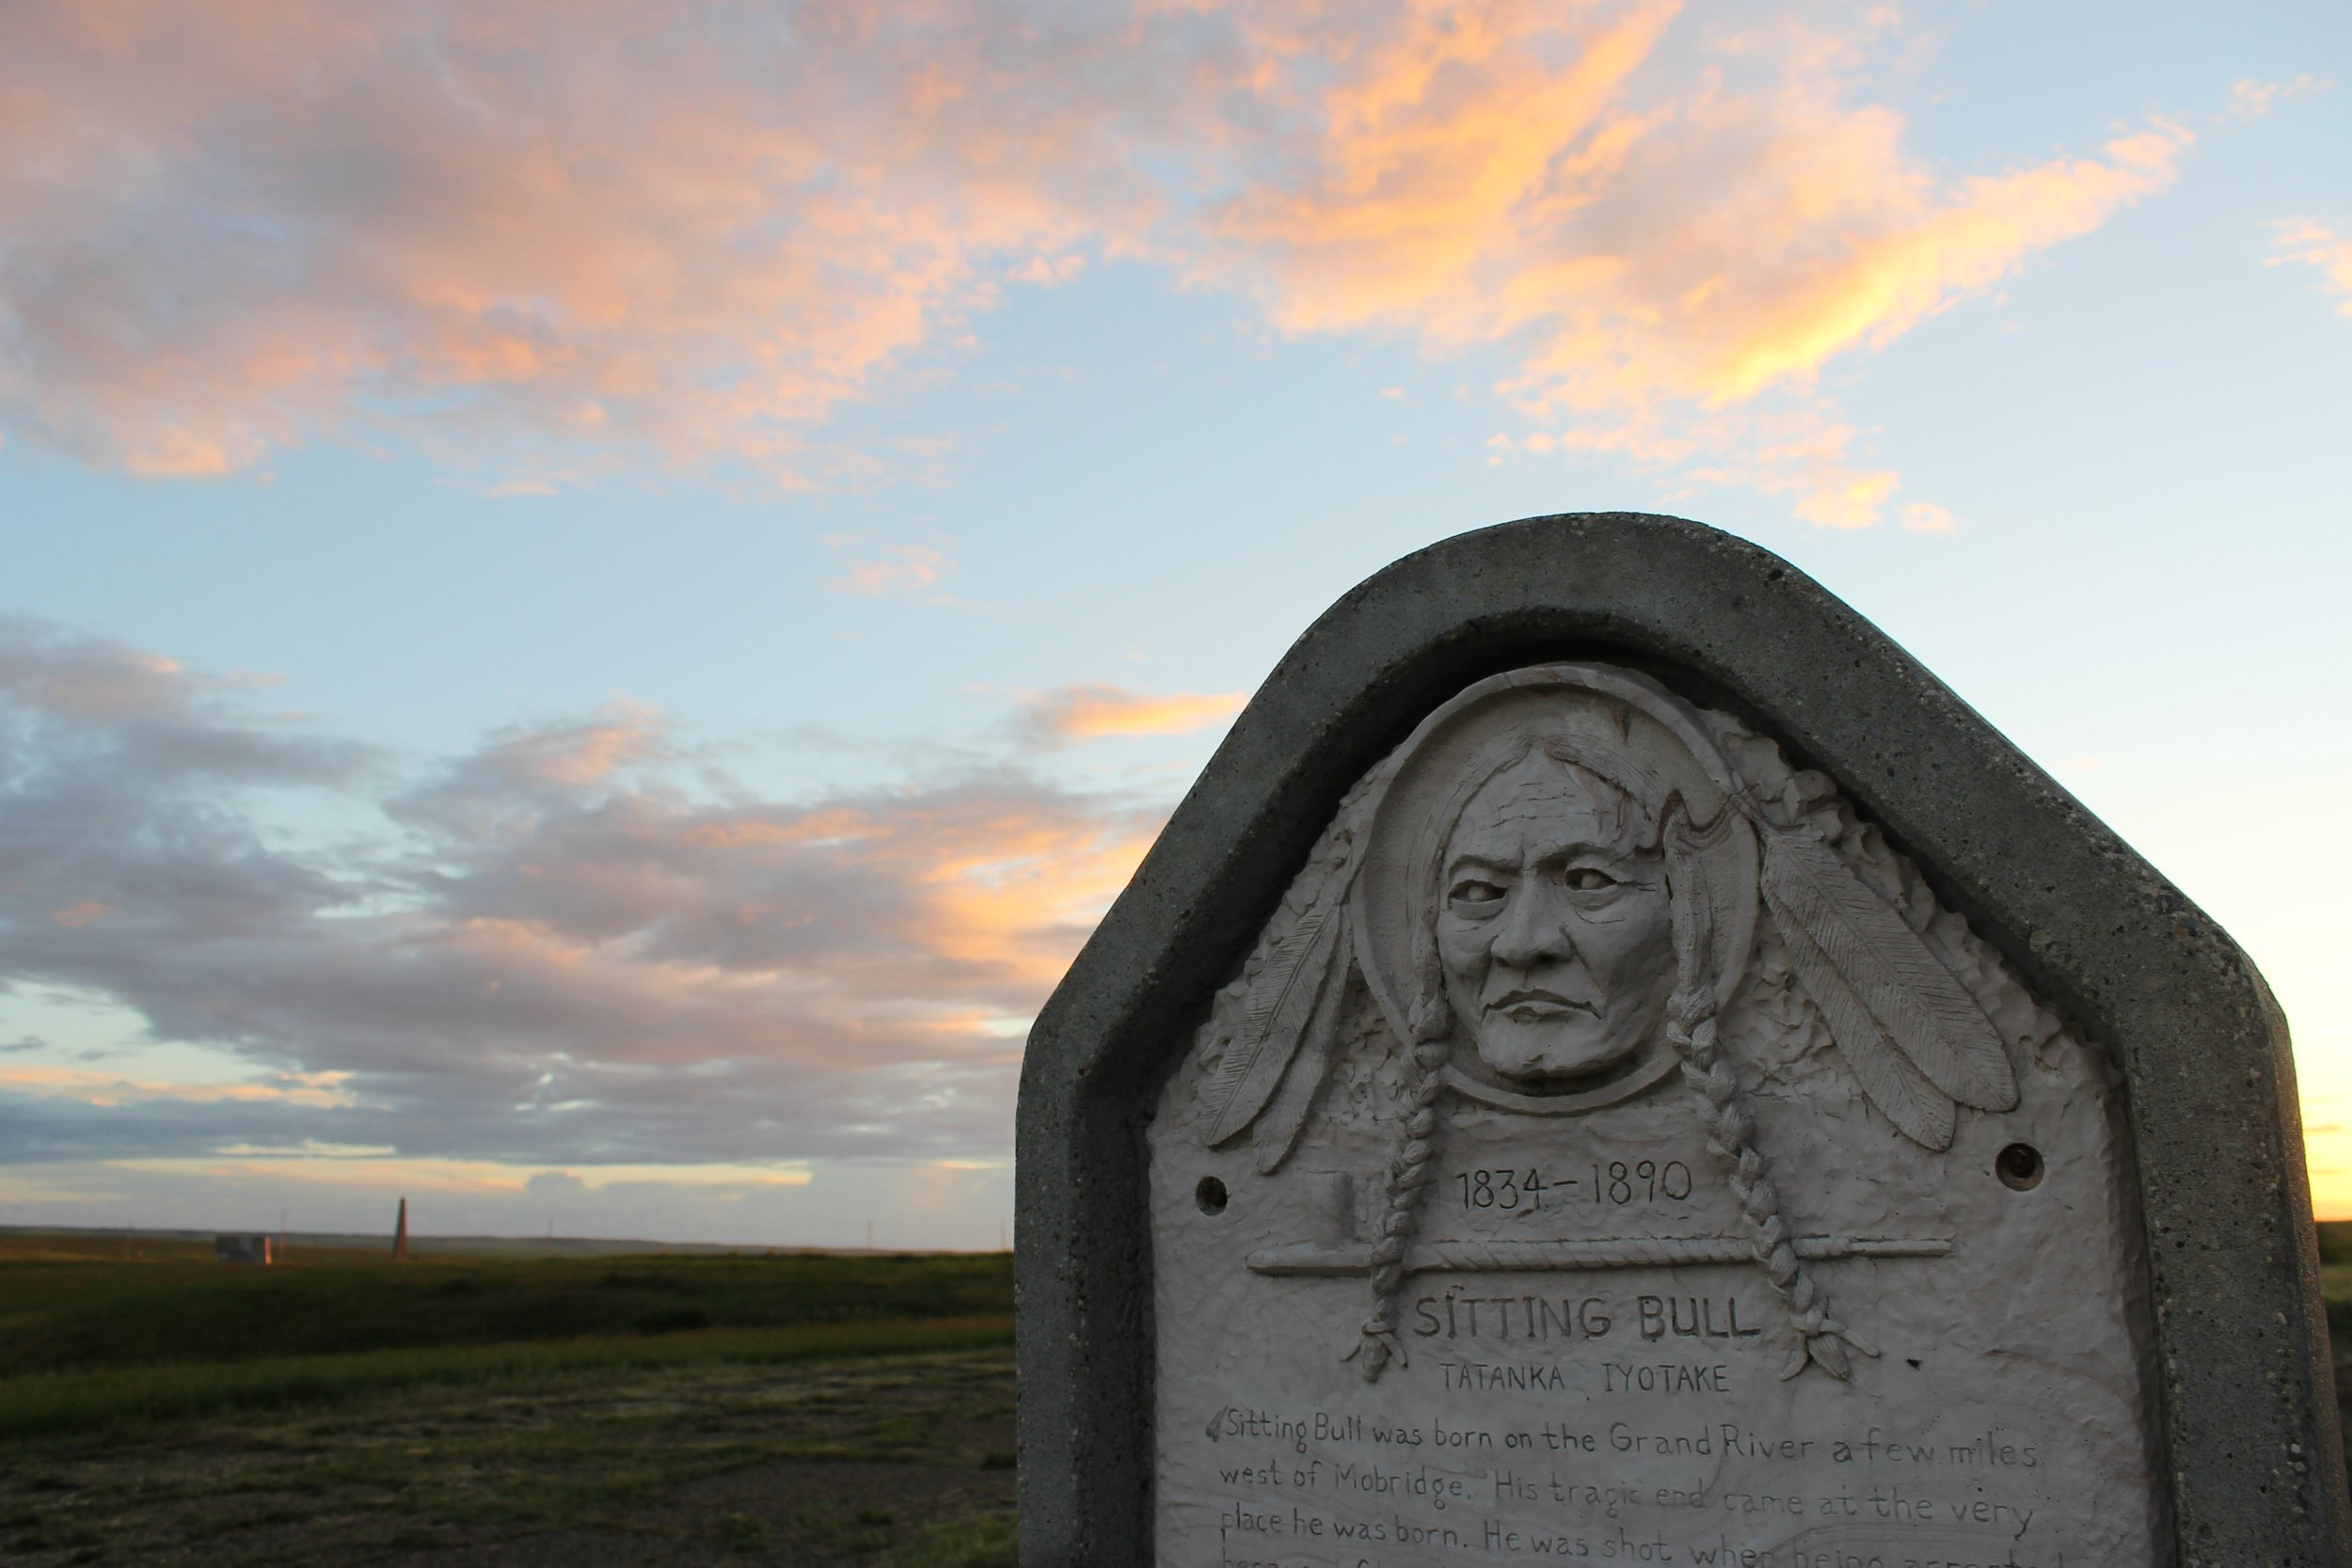 The Grave stone of Chief Sitting Bull. Located in Mobridge, South Dakota He was shot dead while on tour with Buffalo Bill Cody in 1890 in North Dakota